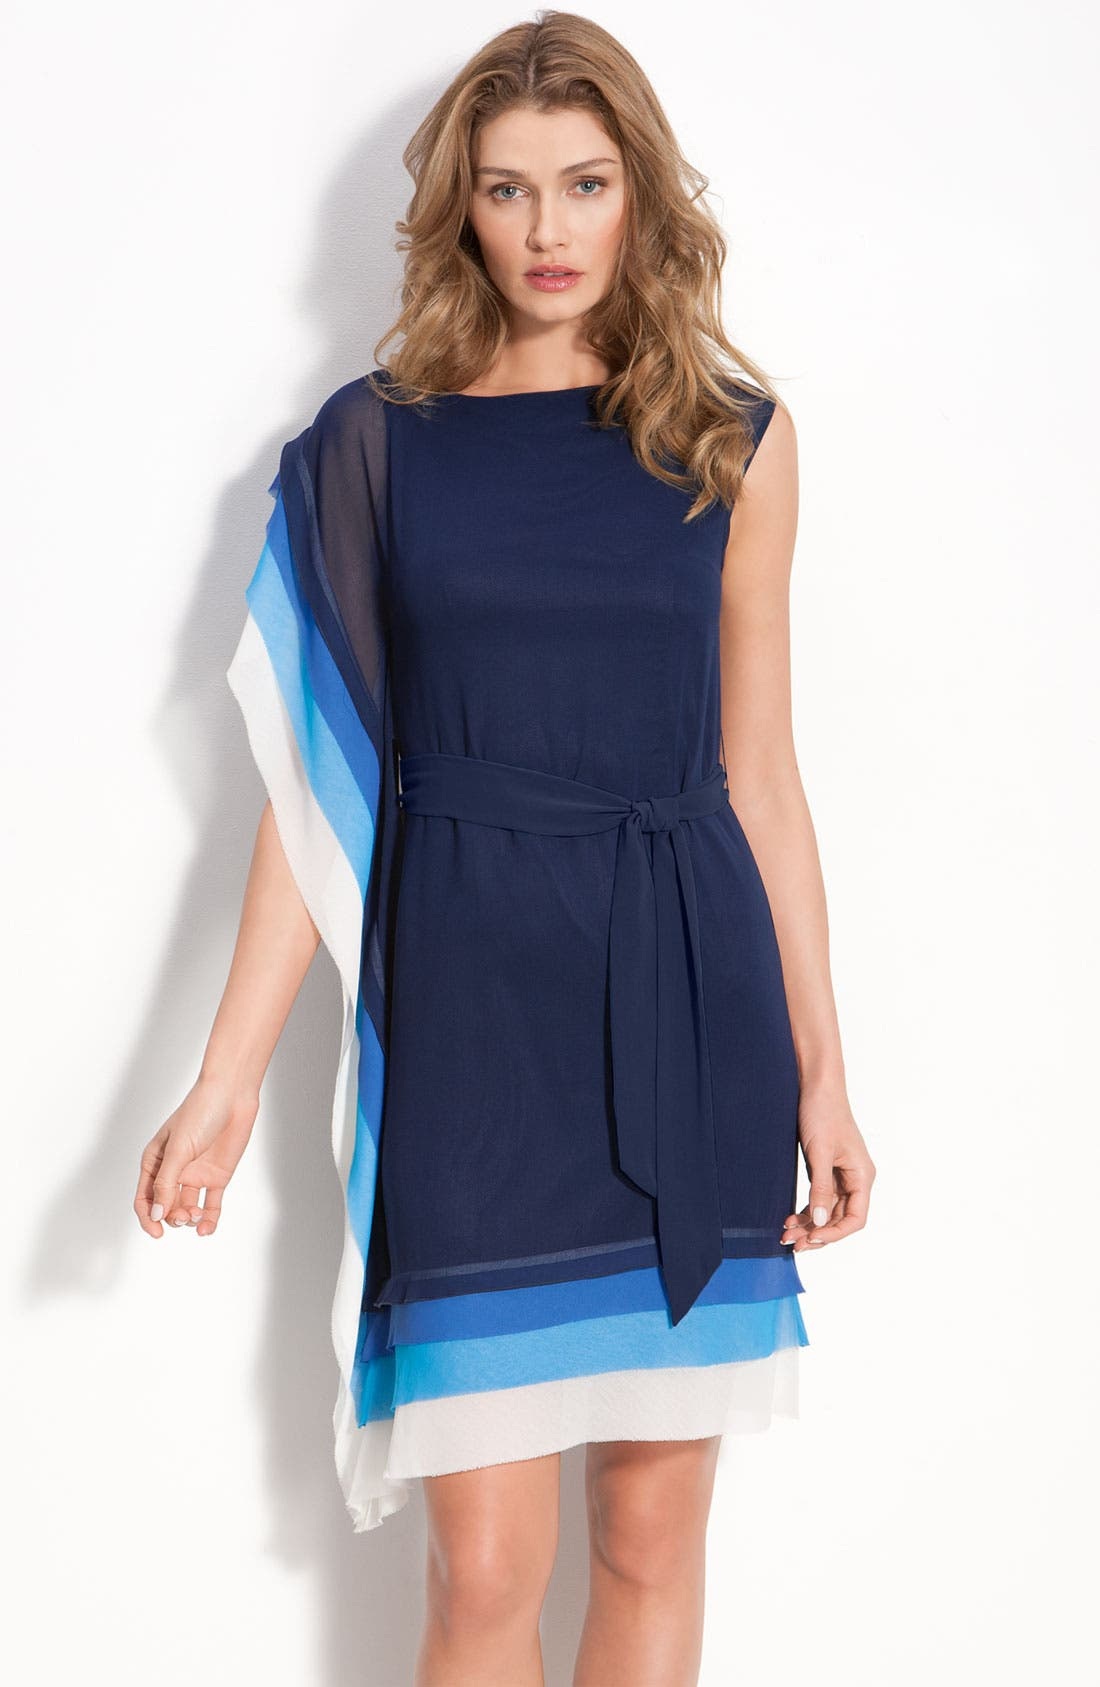 Alternate Image 1 Selected - Vince Camuto Asymmetric Layered Tier Dress with Sash Tie